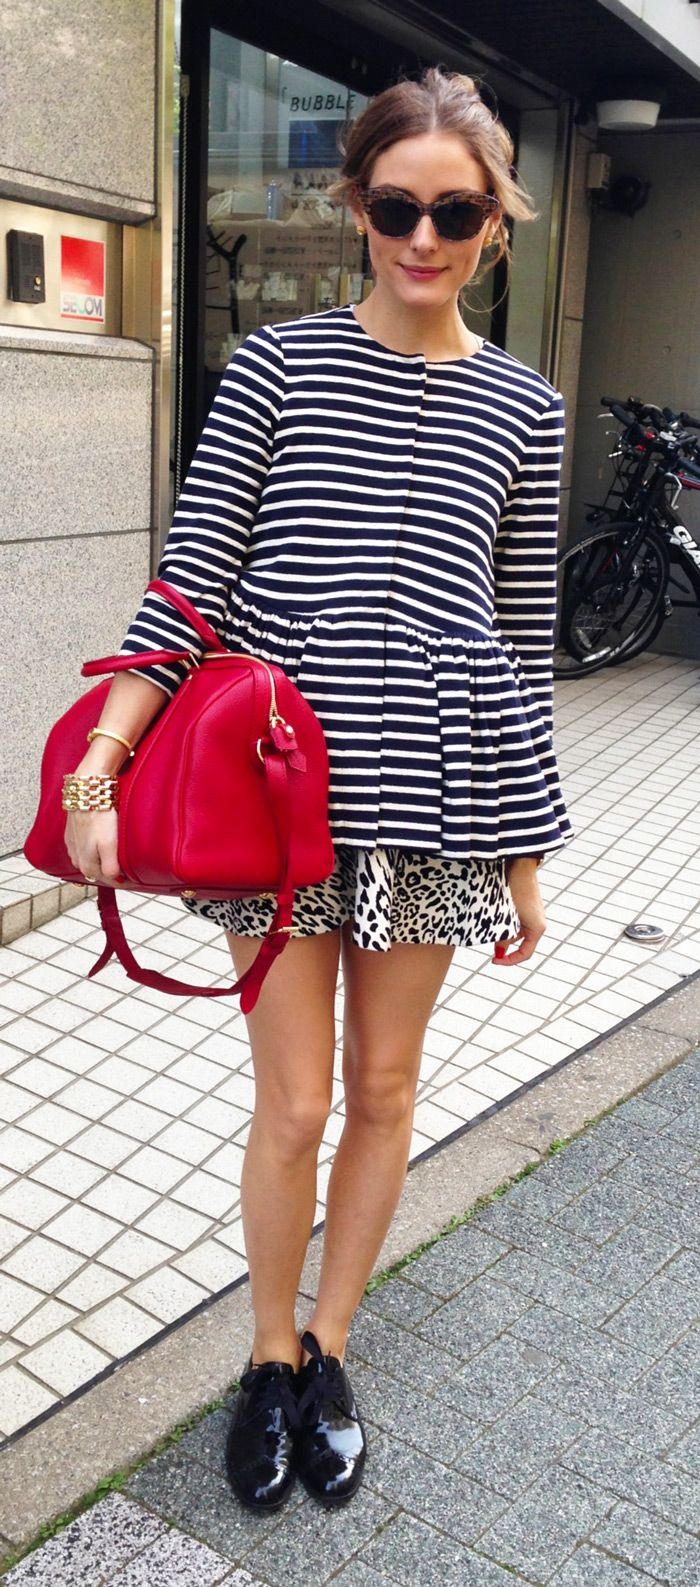 Snapped when I was on my trip in Japan - My skirt is from Zara, my bag is Louis Vuitton, my jacket is Tibi, my glasses are wunderkind.